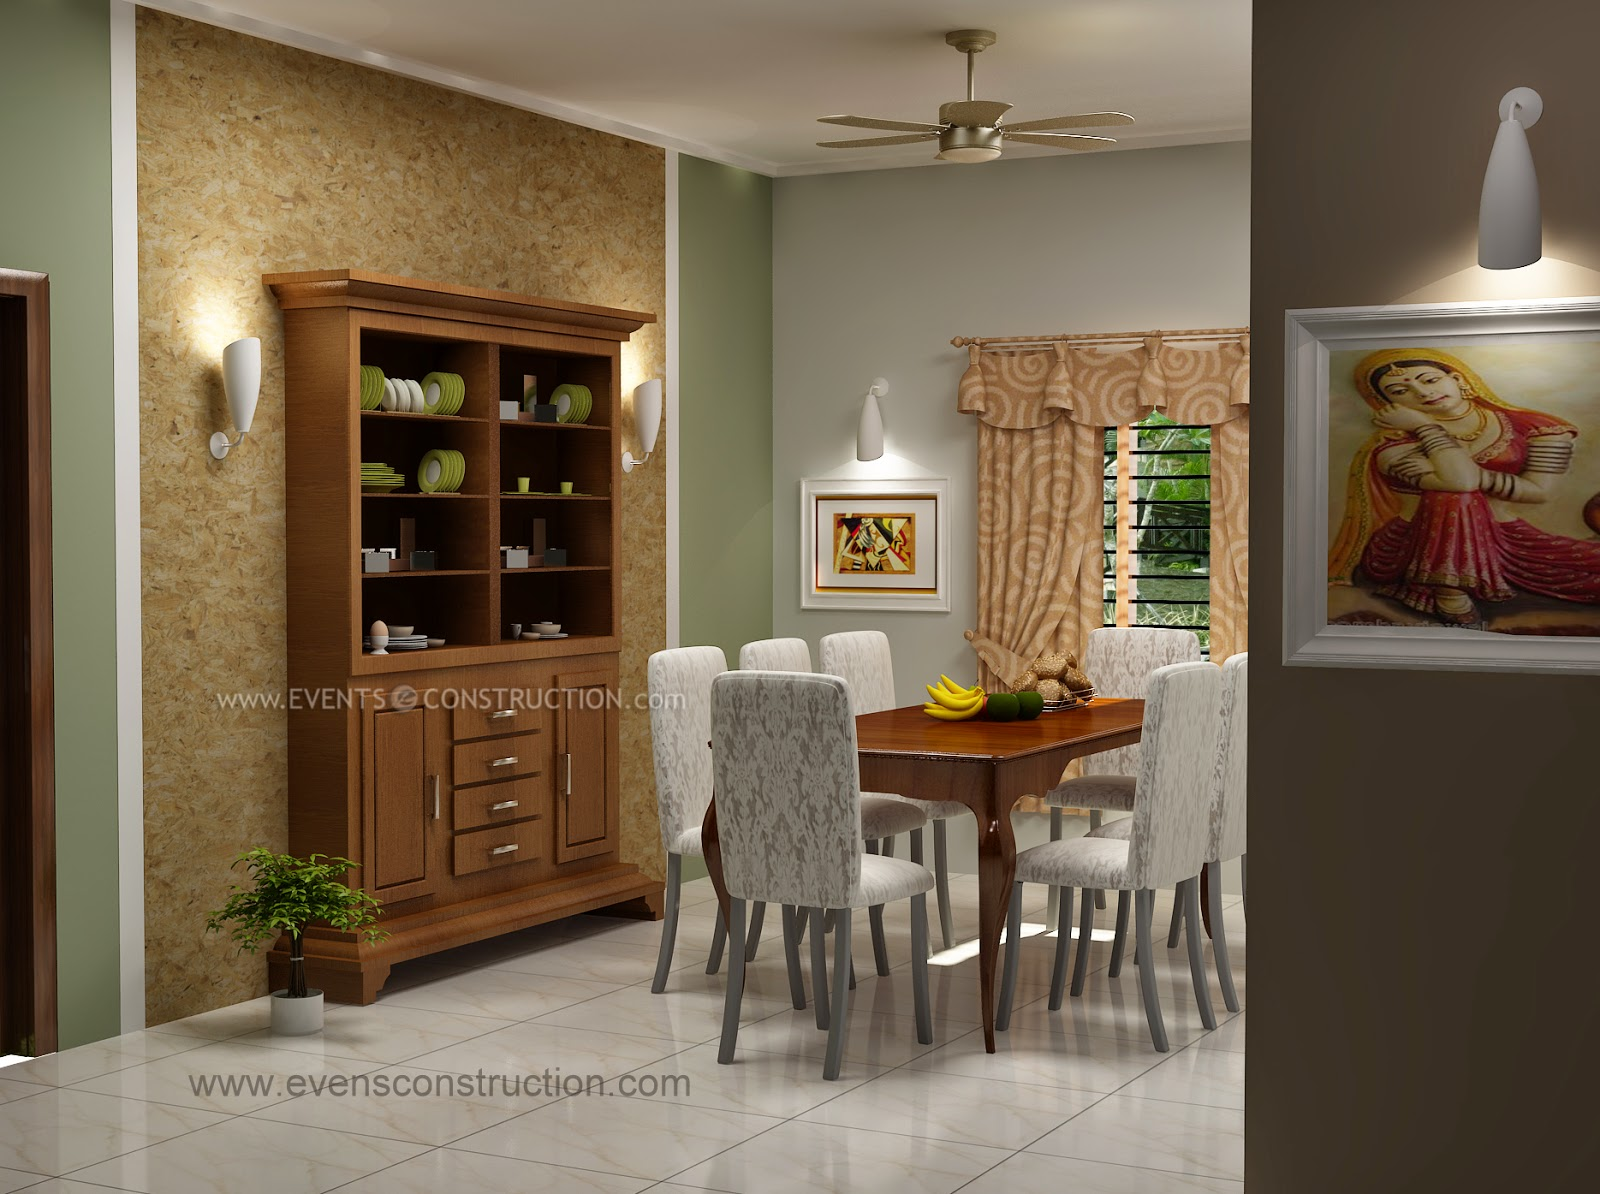 Evens construction pvt ltd july 2014 for Dining room designs kerala